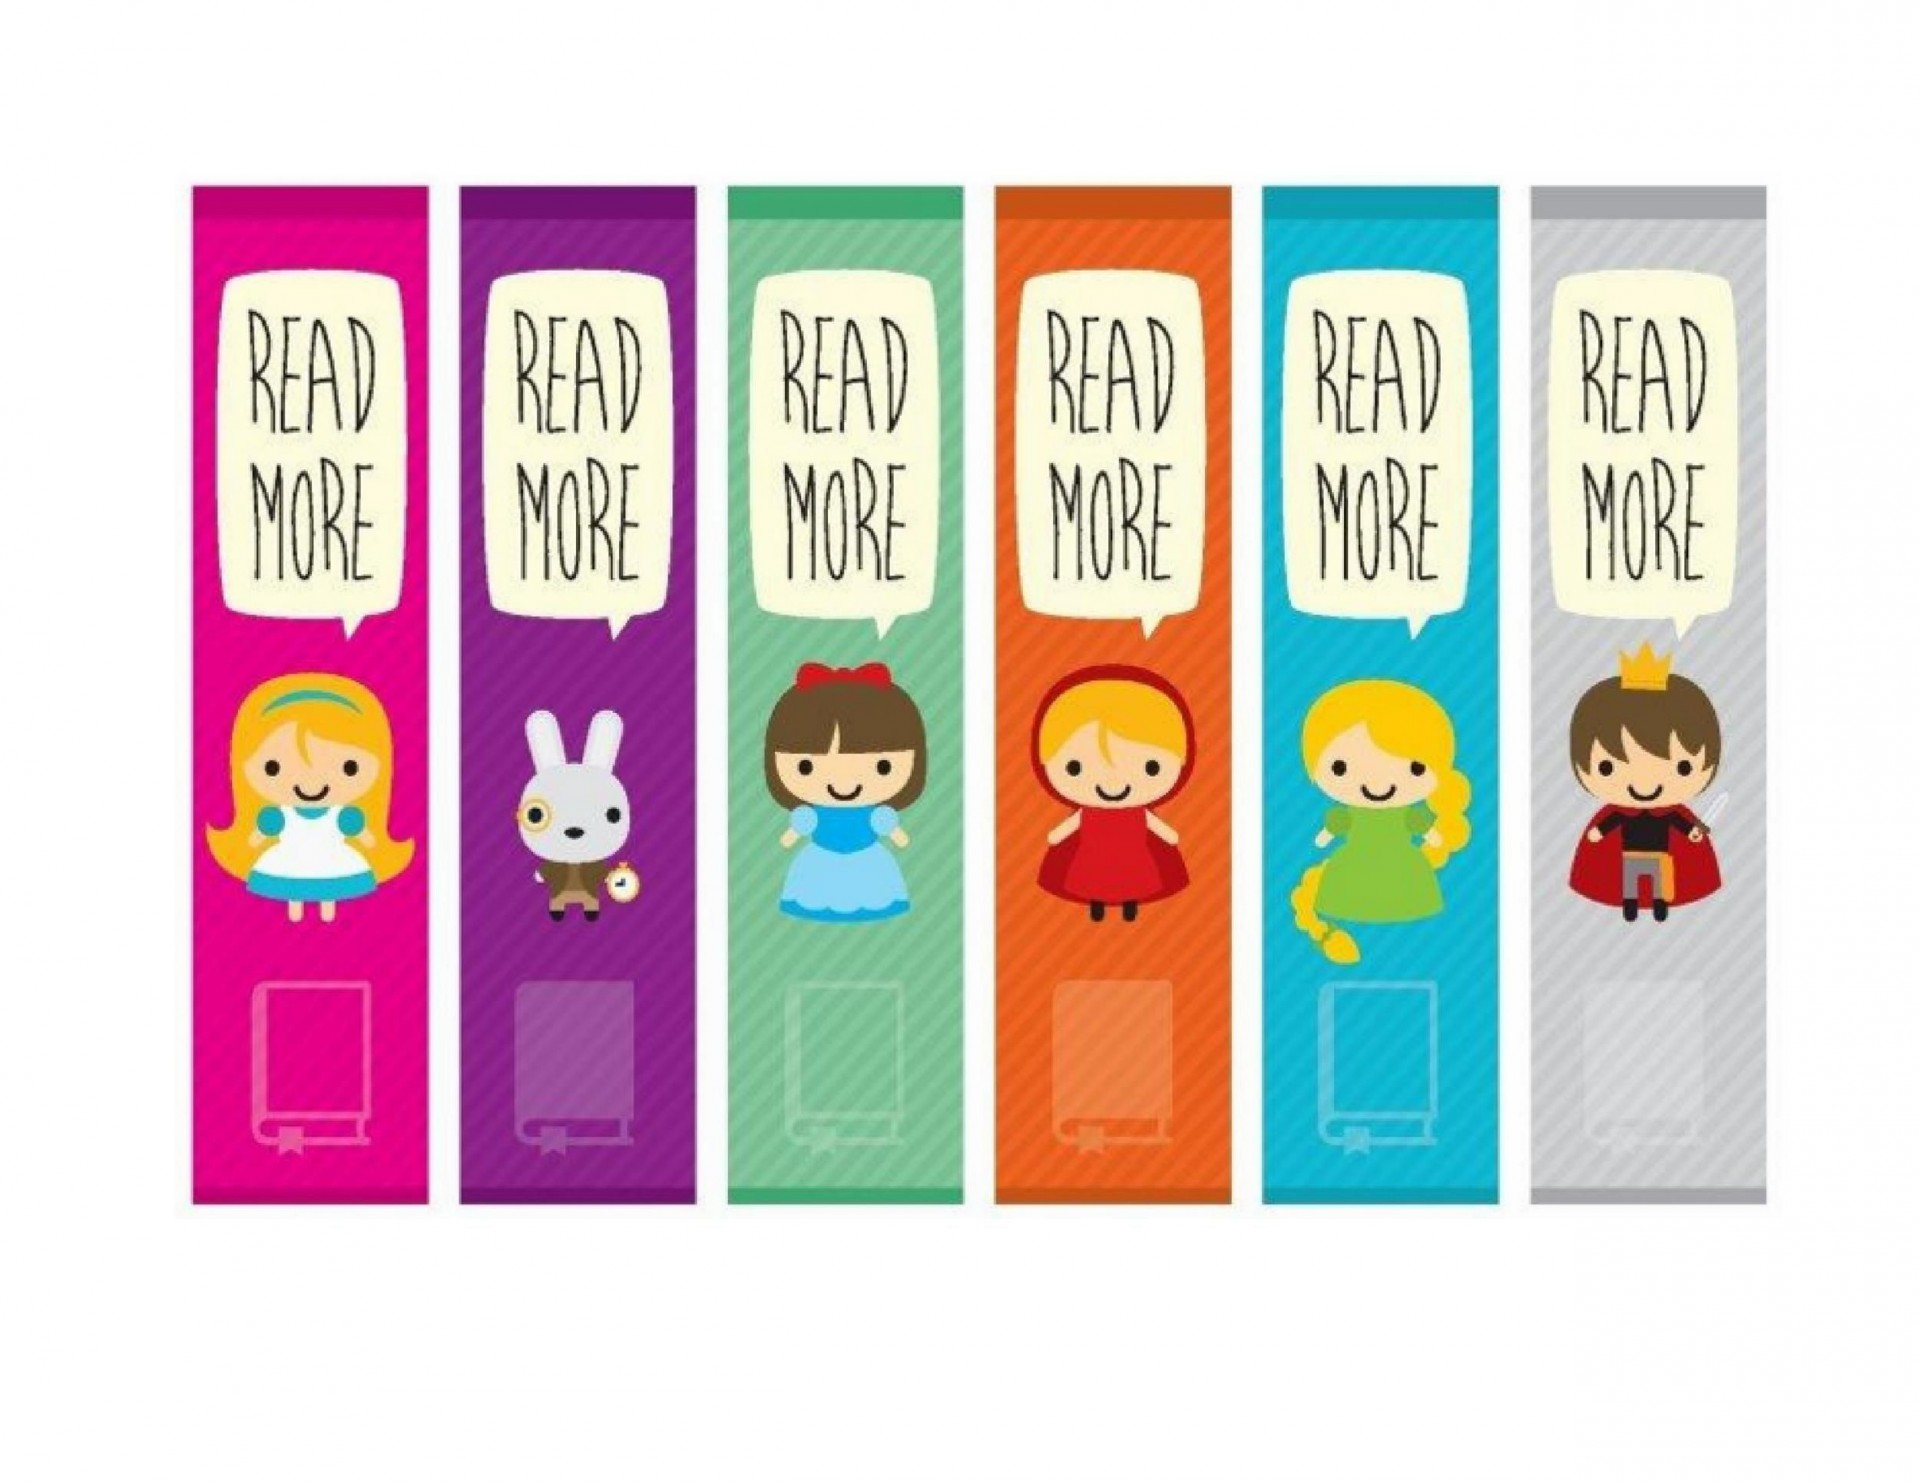 005 Unbelievable Free Printable Bookmark Template Highest Clarity  Templates Download Photo For Teacher1920